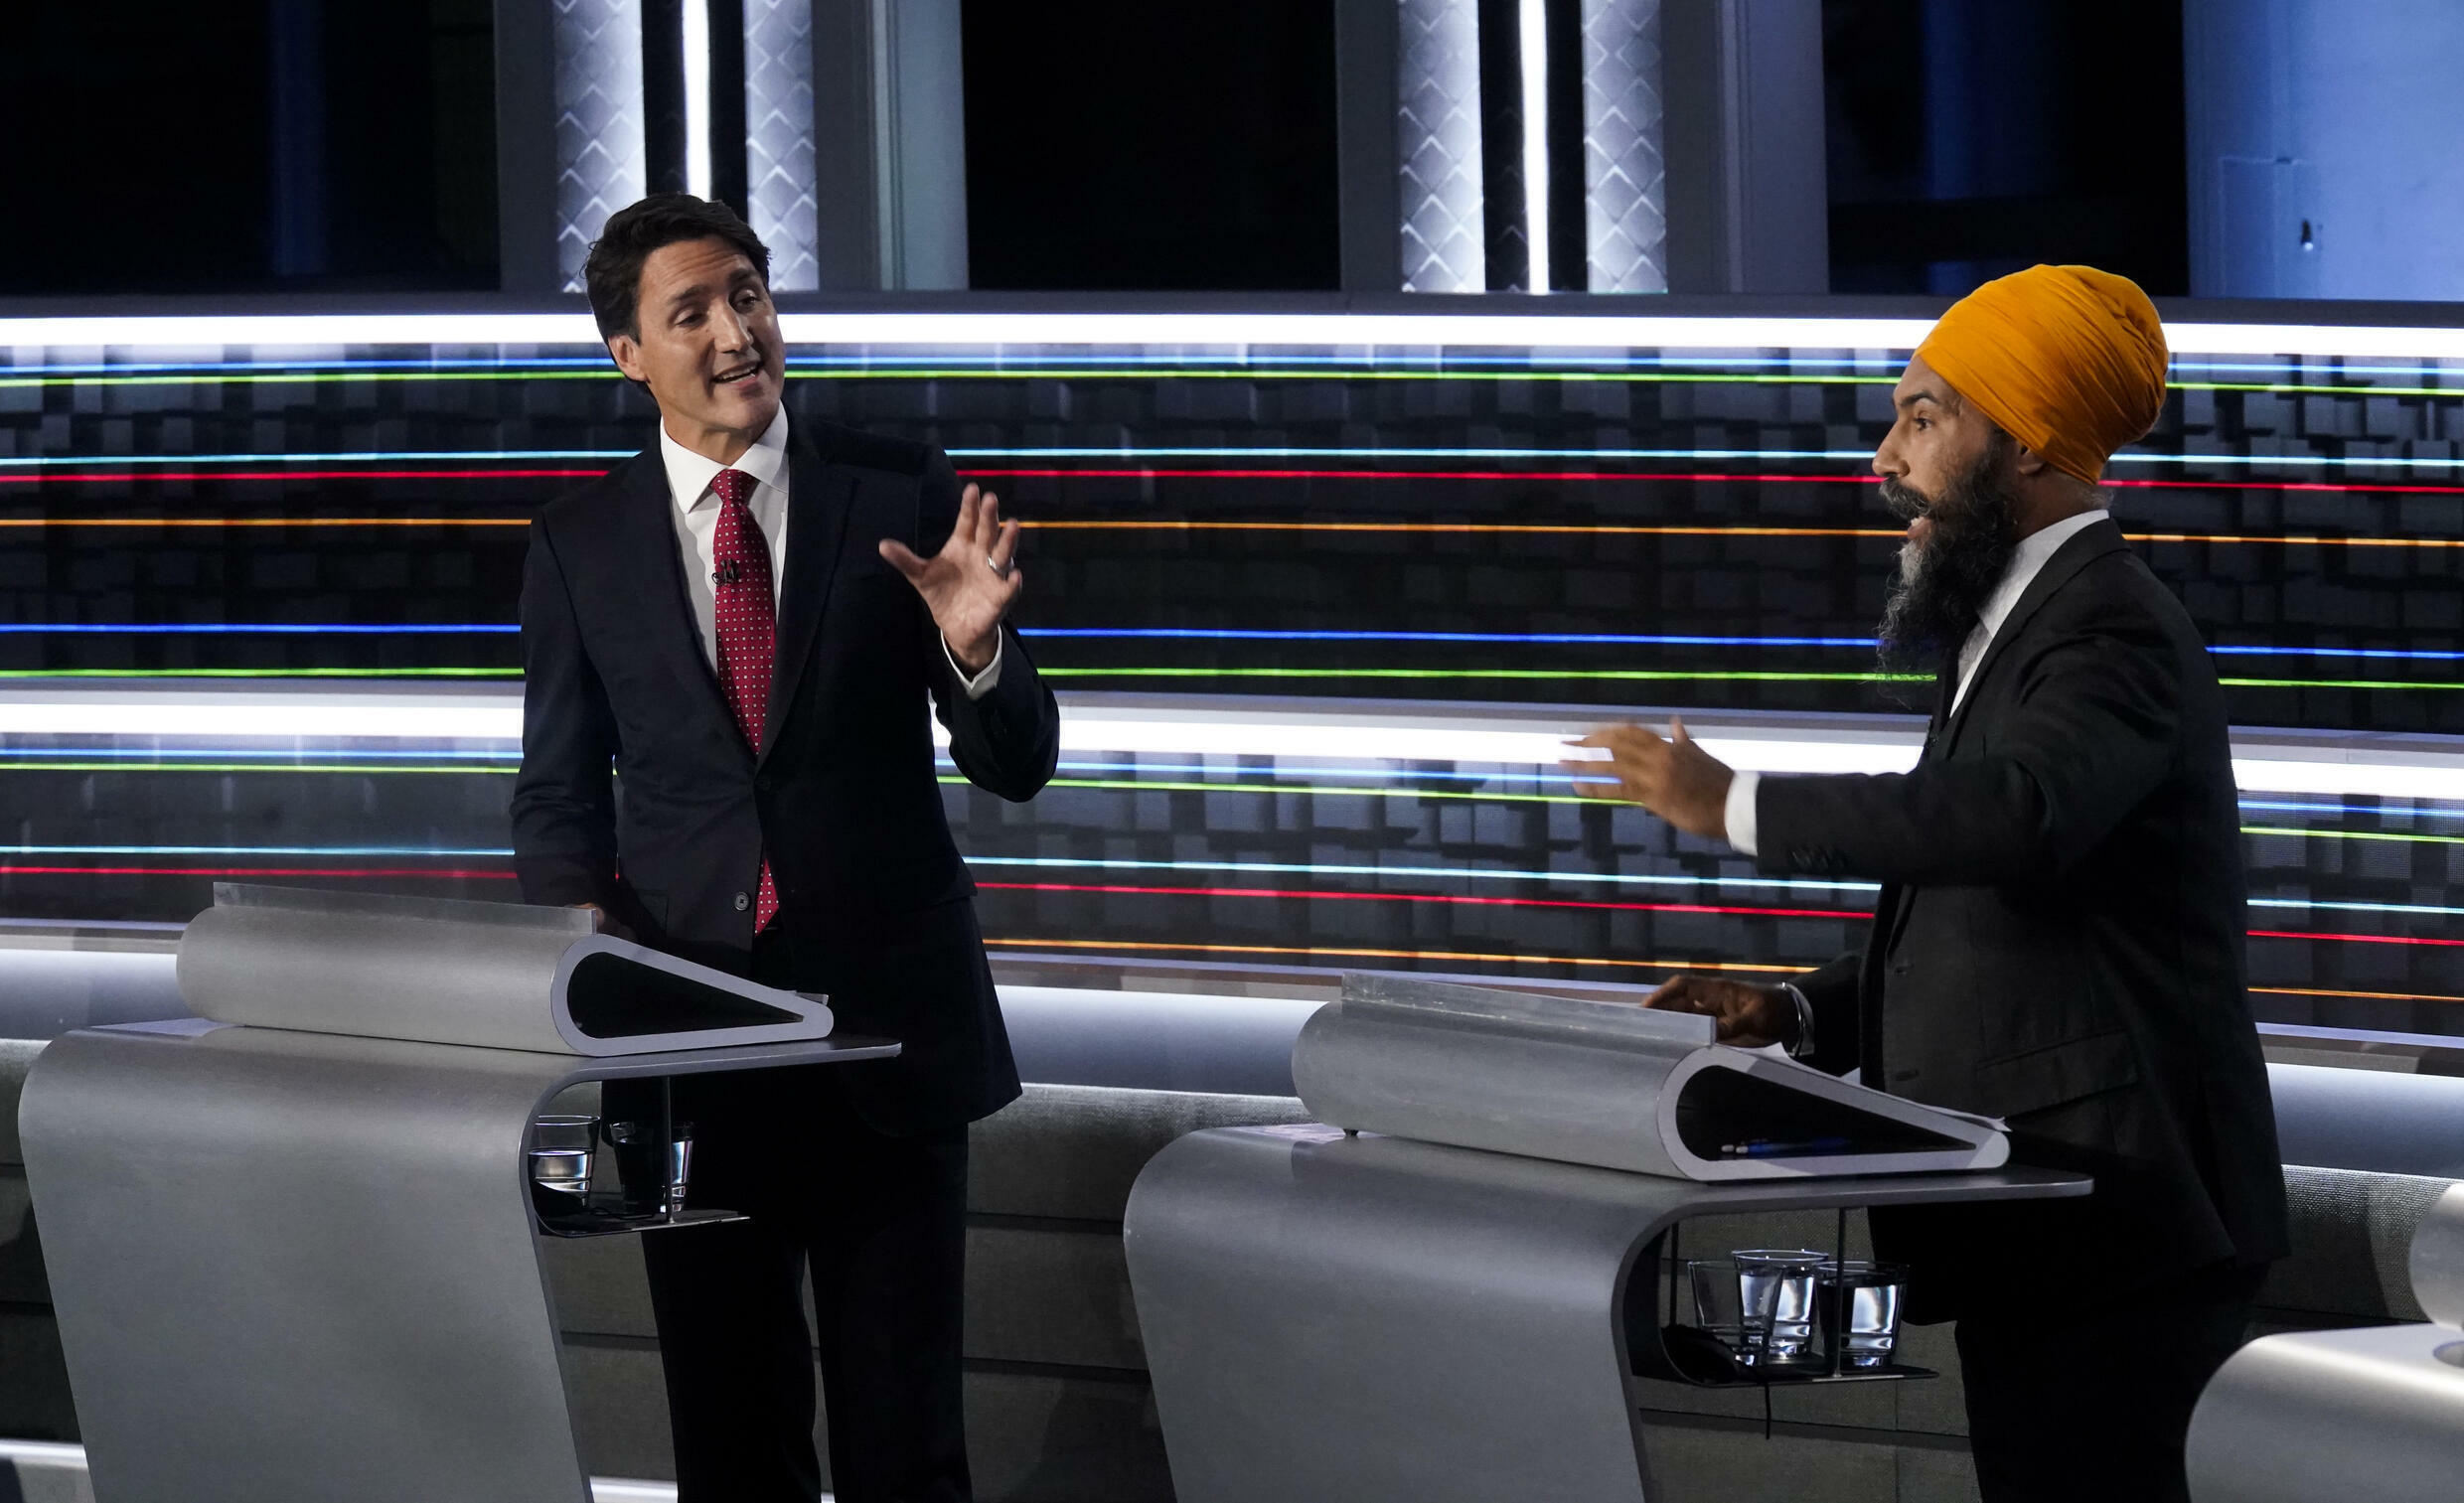 NDP leader Jagmeet Singh (R) spars with Canadian Prime Minister Justin Trudeau in a debate ahead of September 20 snap elections